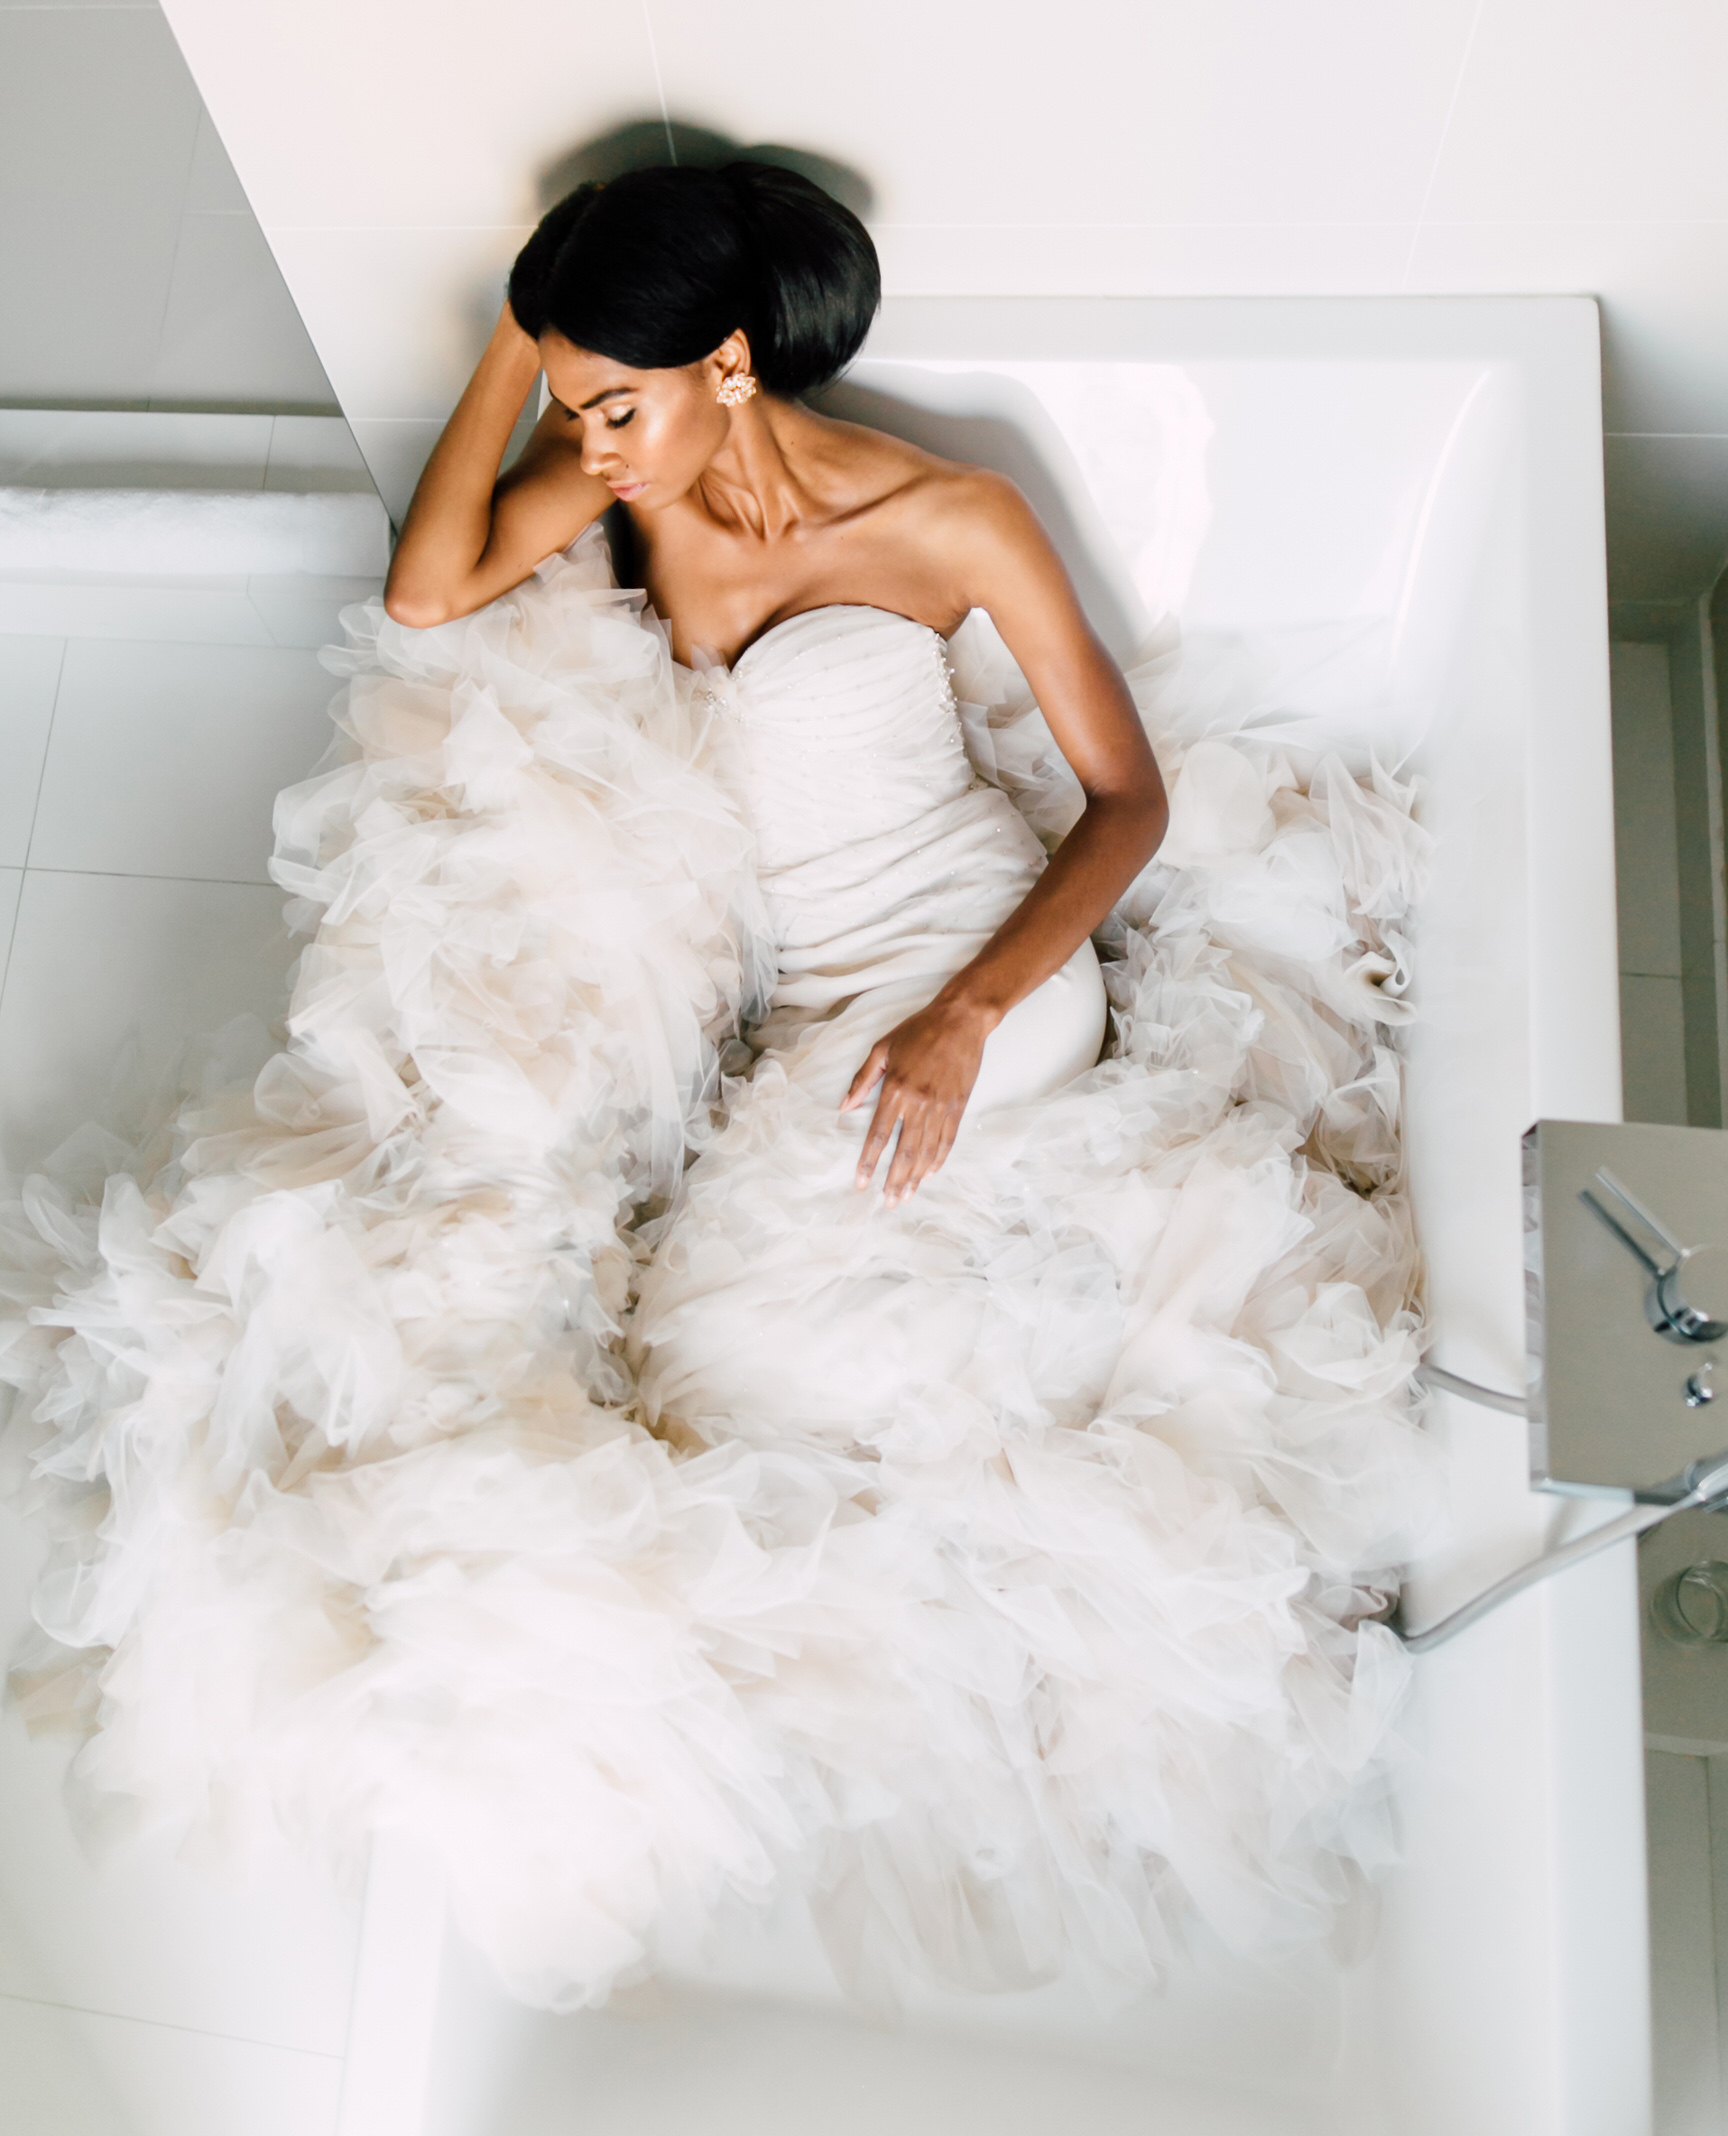 bride in inbal dror mermaid wedding dress posing in bathtub